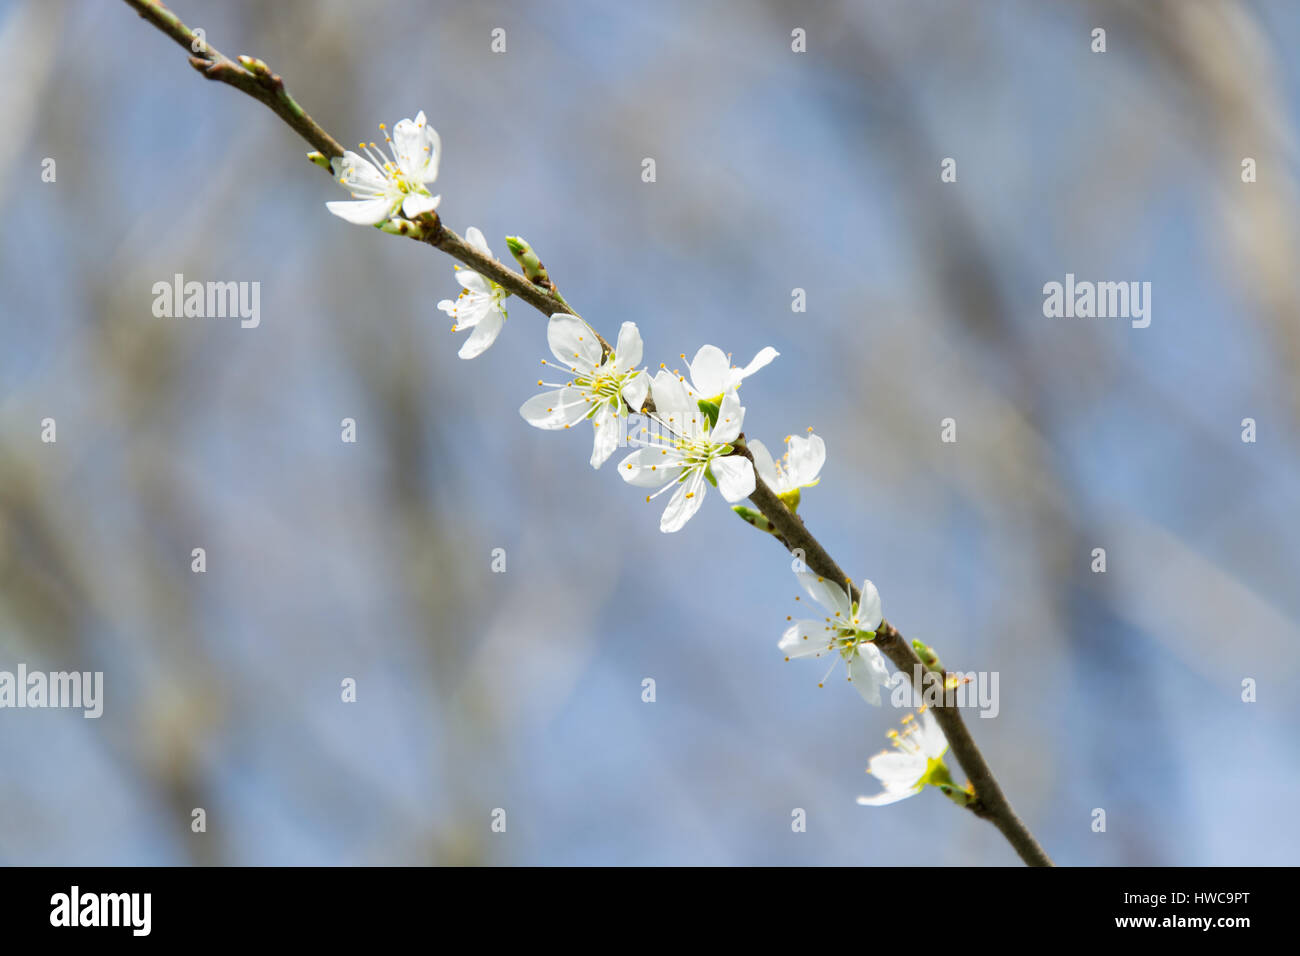 White plum tree stock photos white plum tree stock images alamy clouseup of white plum flower spring blossom stock image mightylinksfo